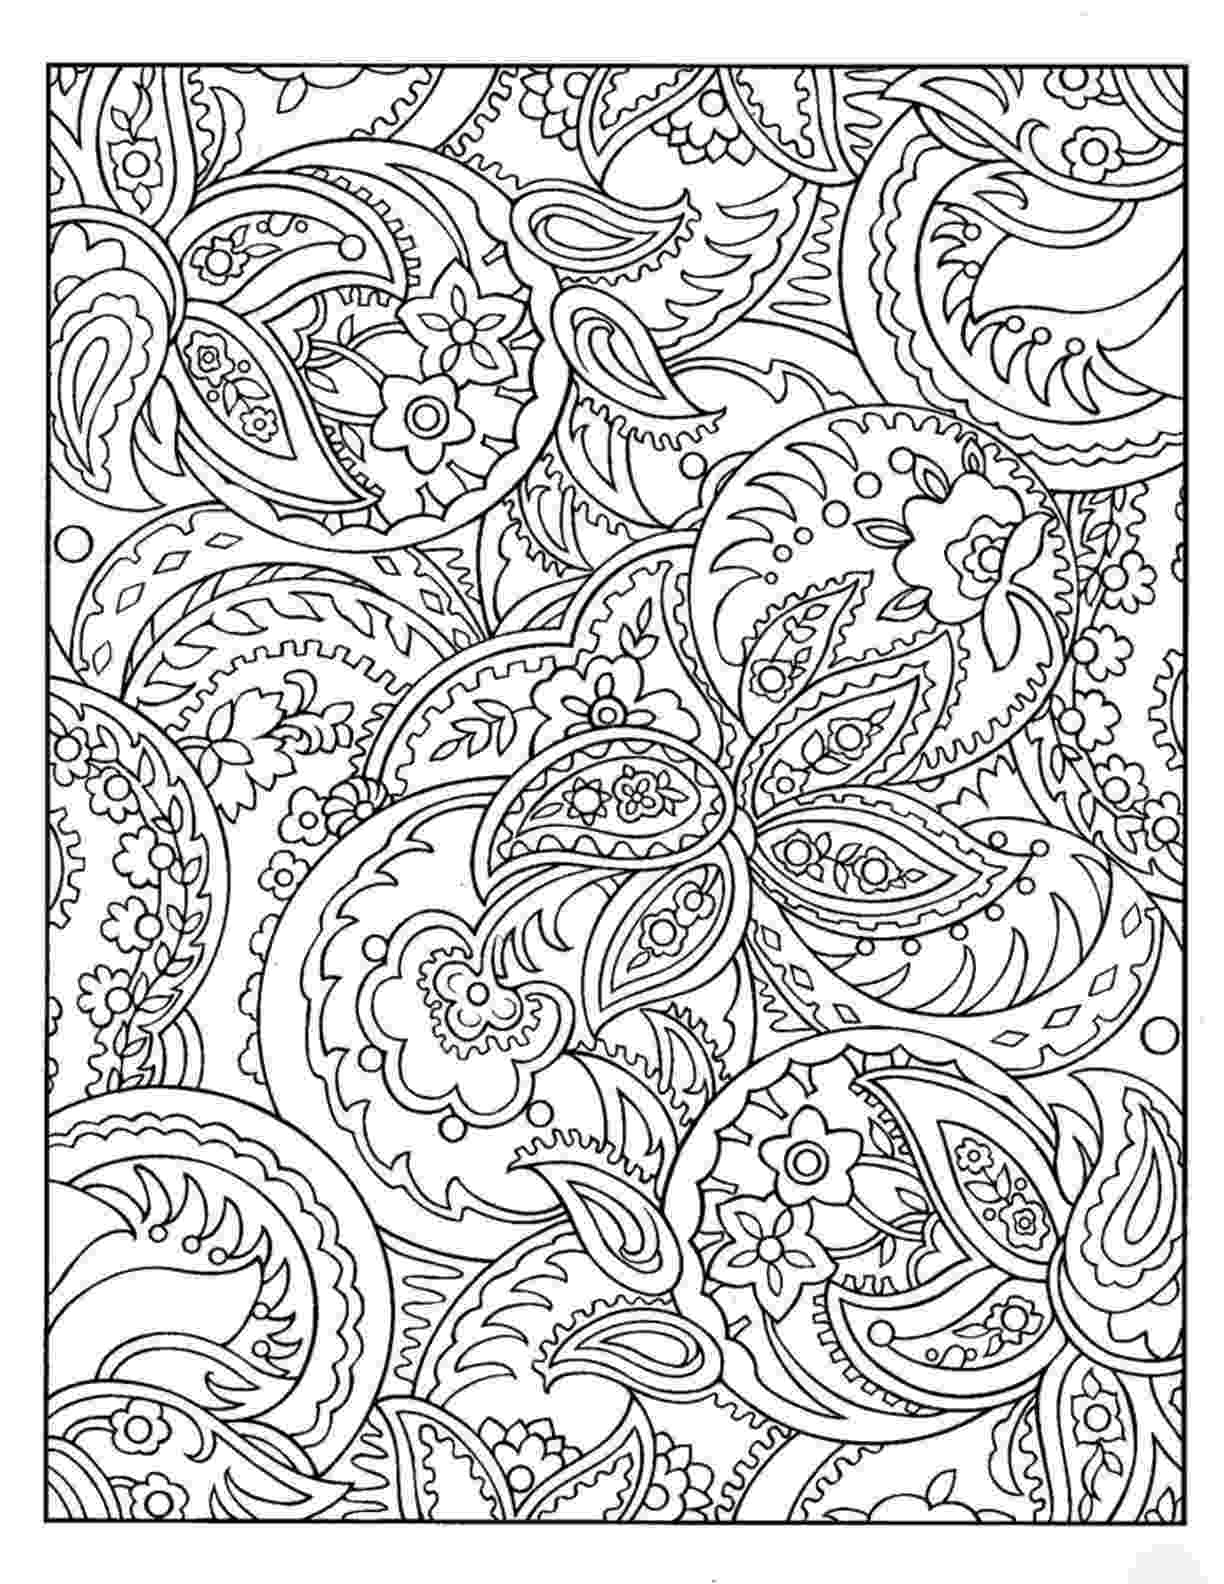 free printable patterns to colour free printable geometric coloring pages for adults to colour free patterns printable